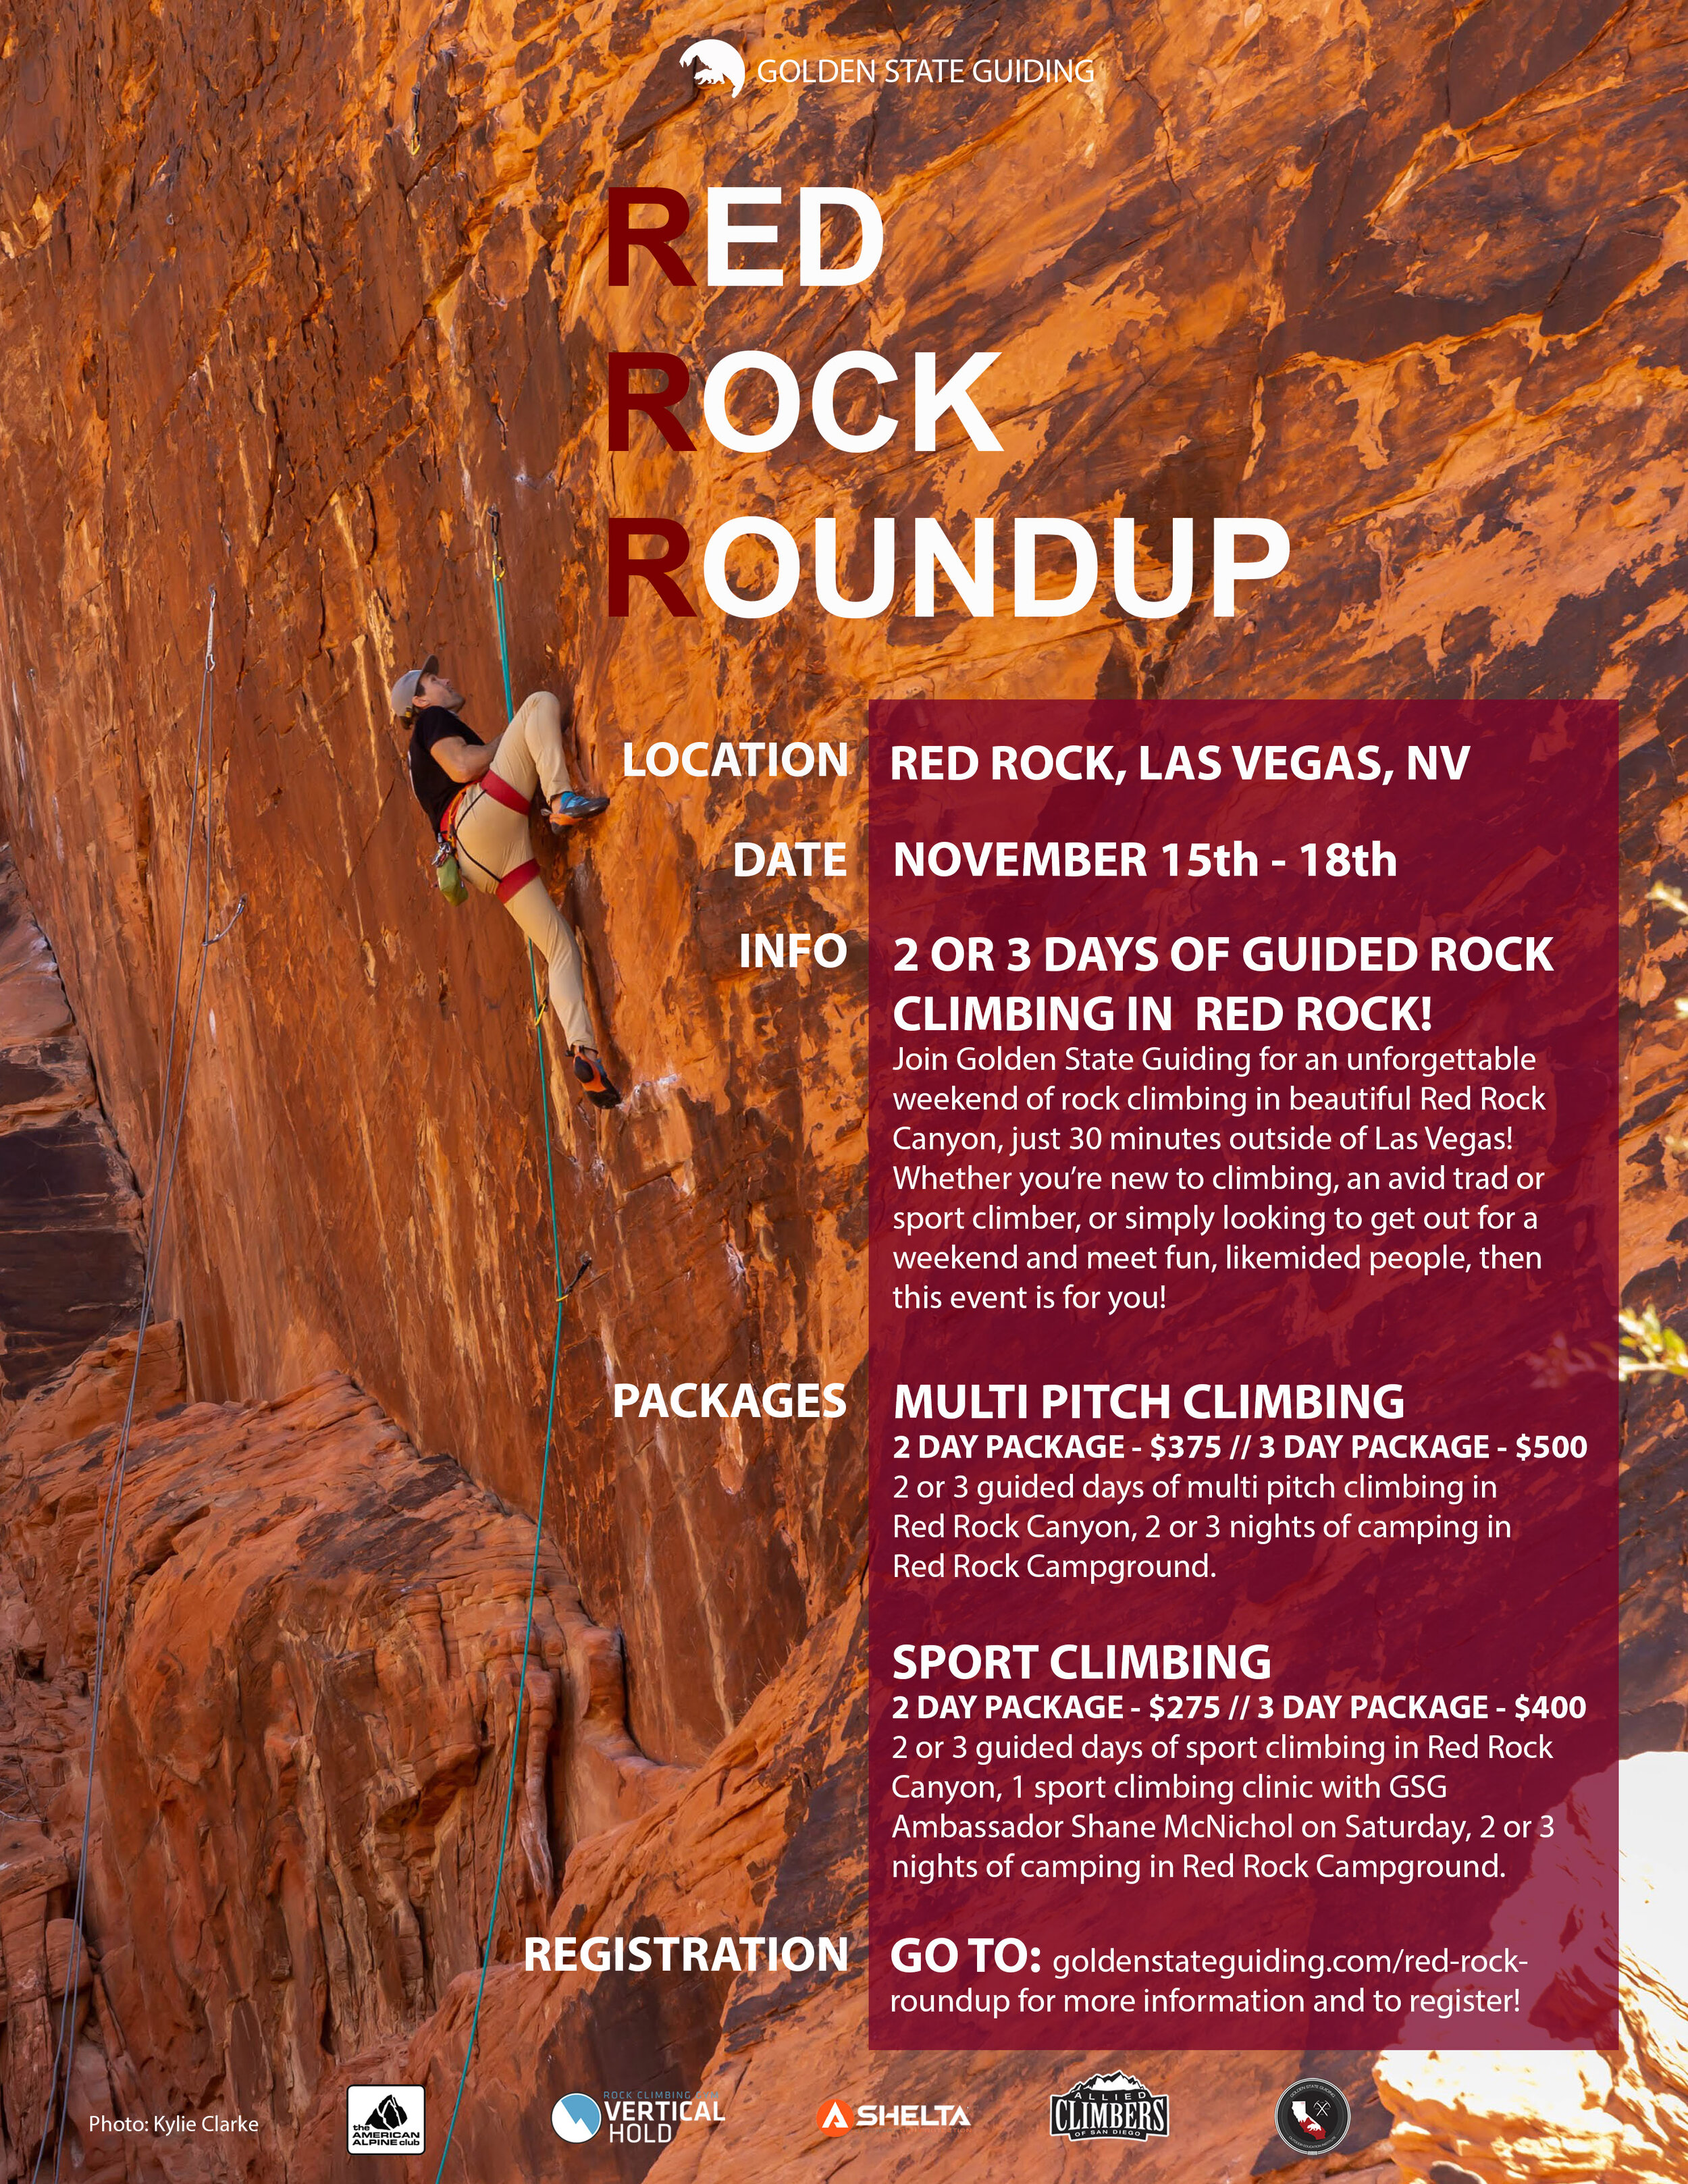 Red Rock Roundup